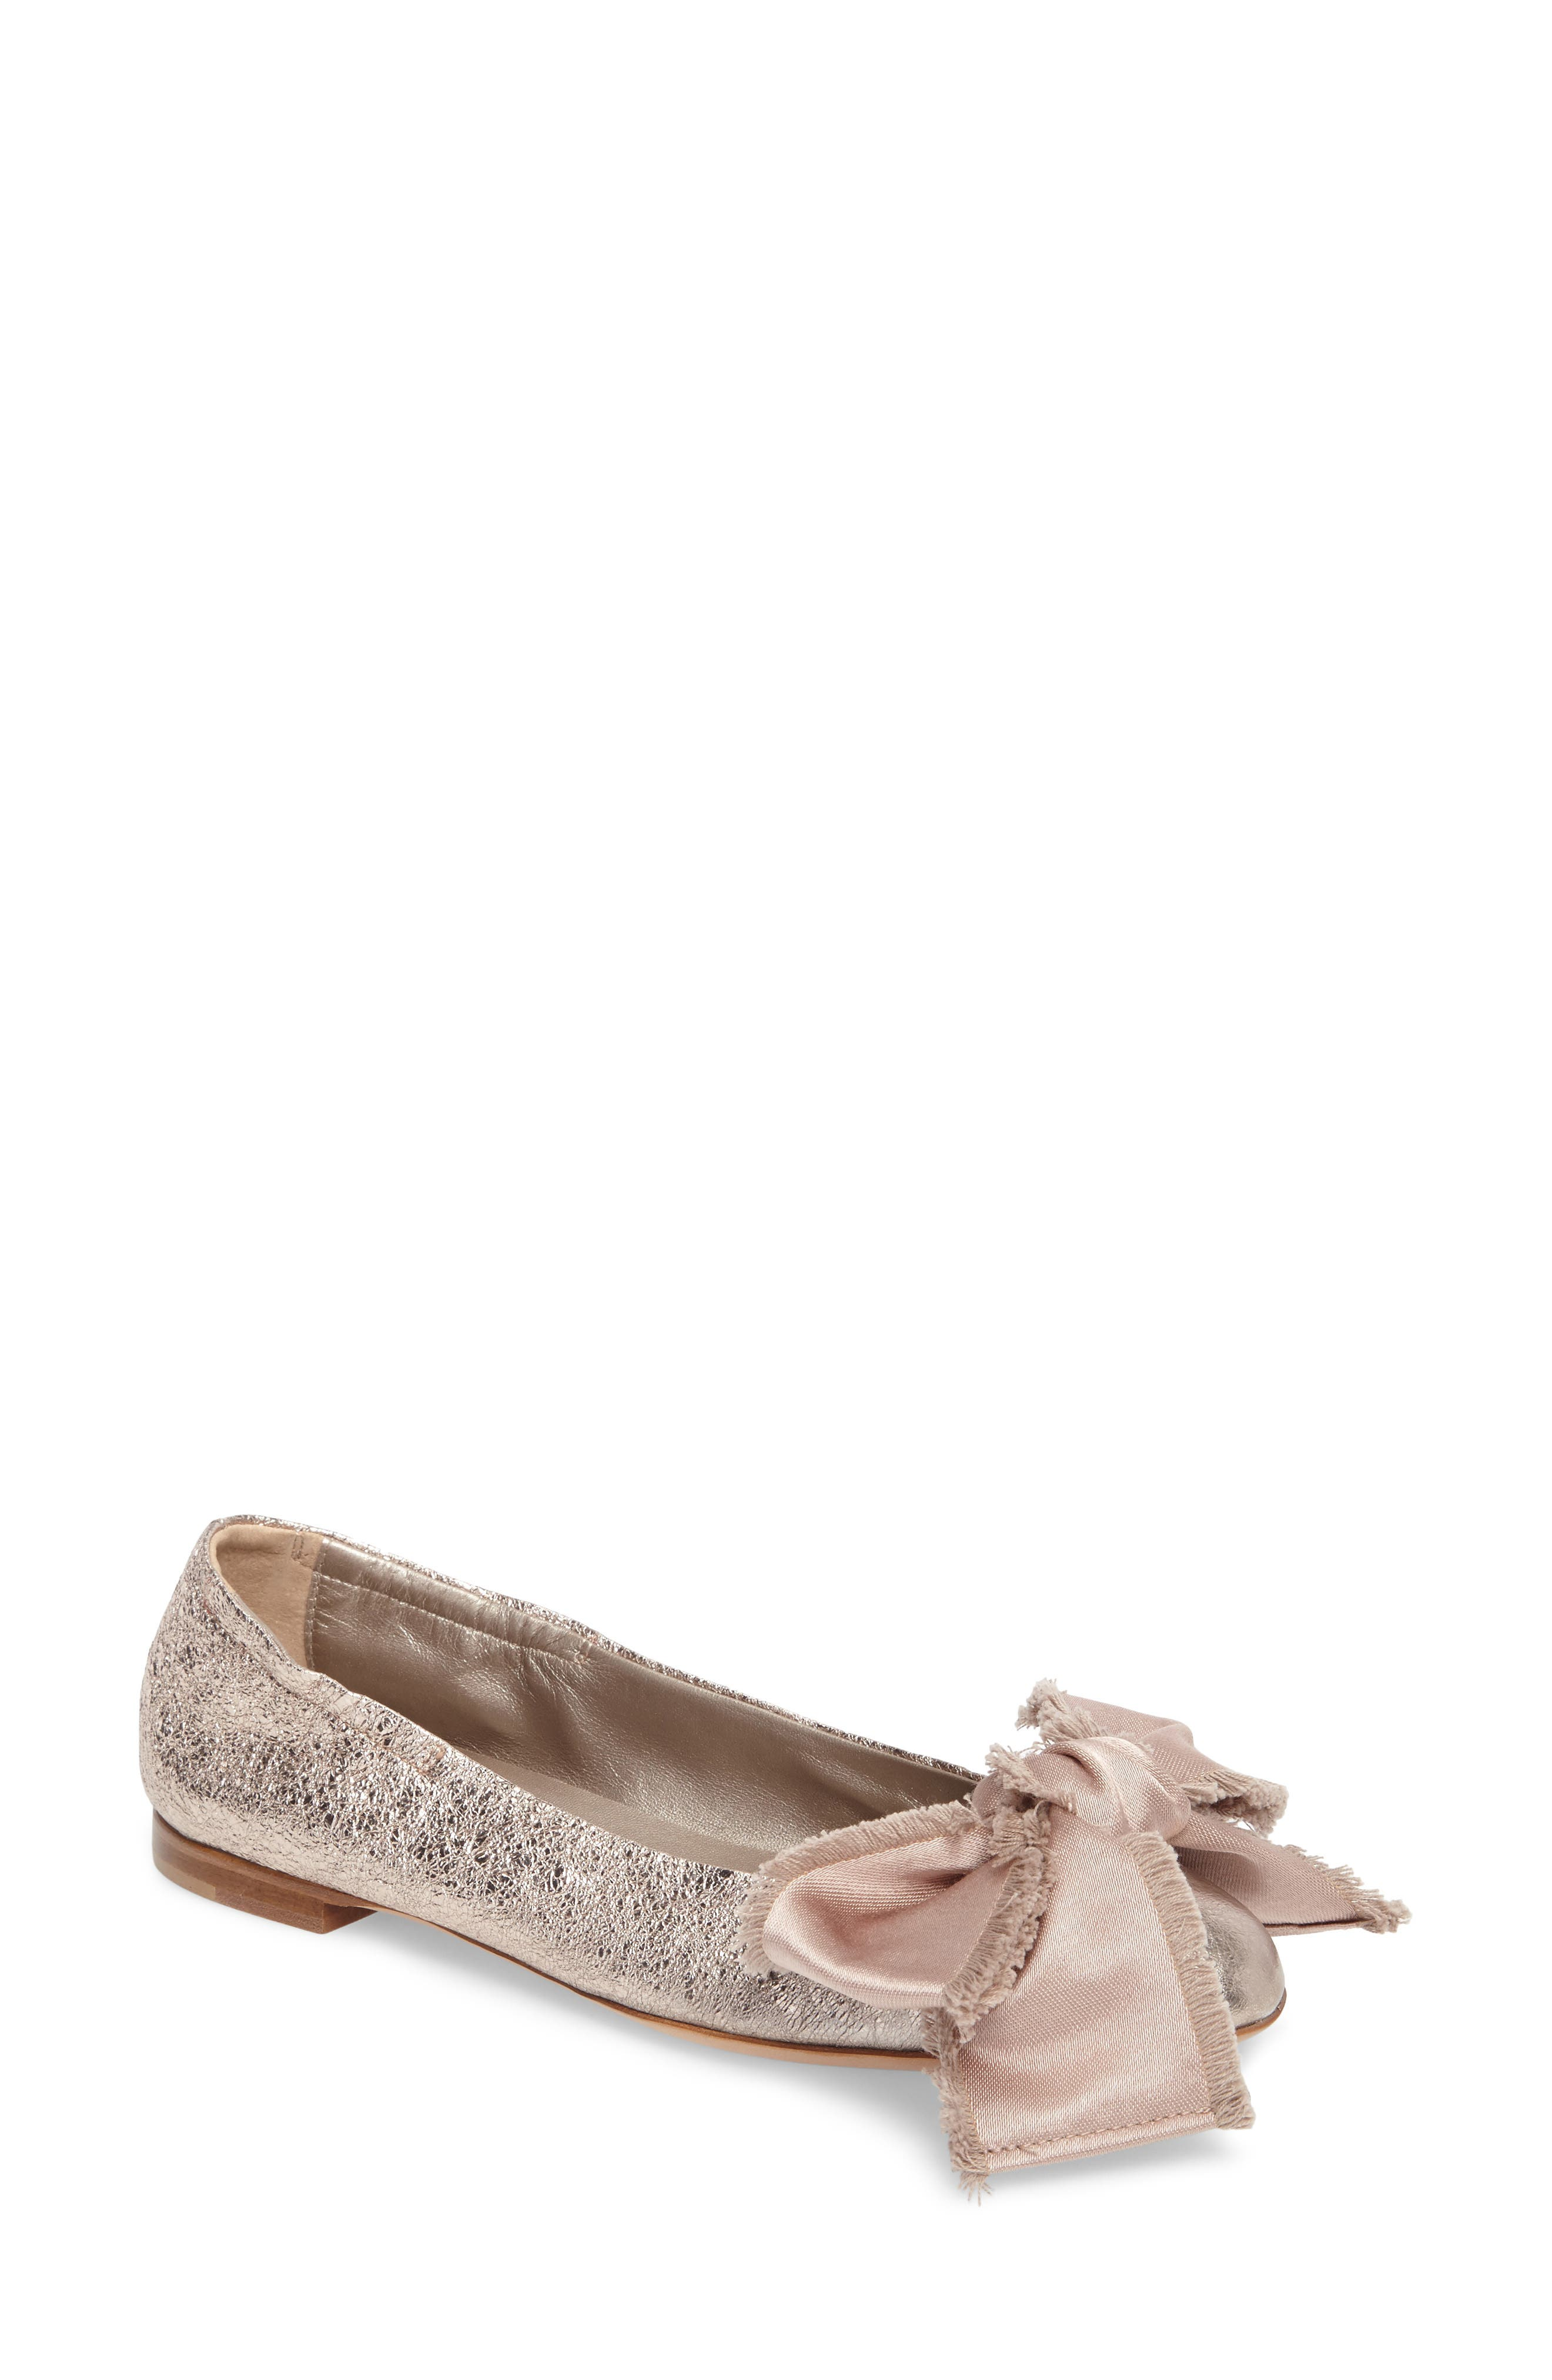 Satin Bow Ballet Flat,                         Main,                         color, Pink Leather